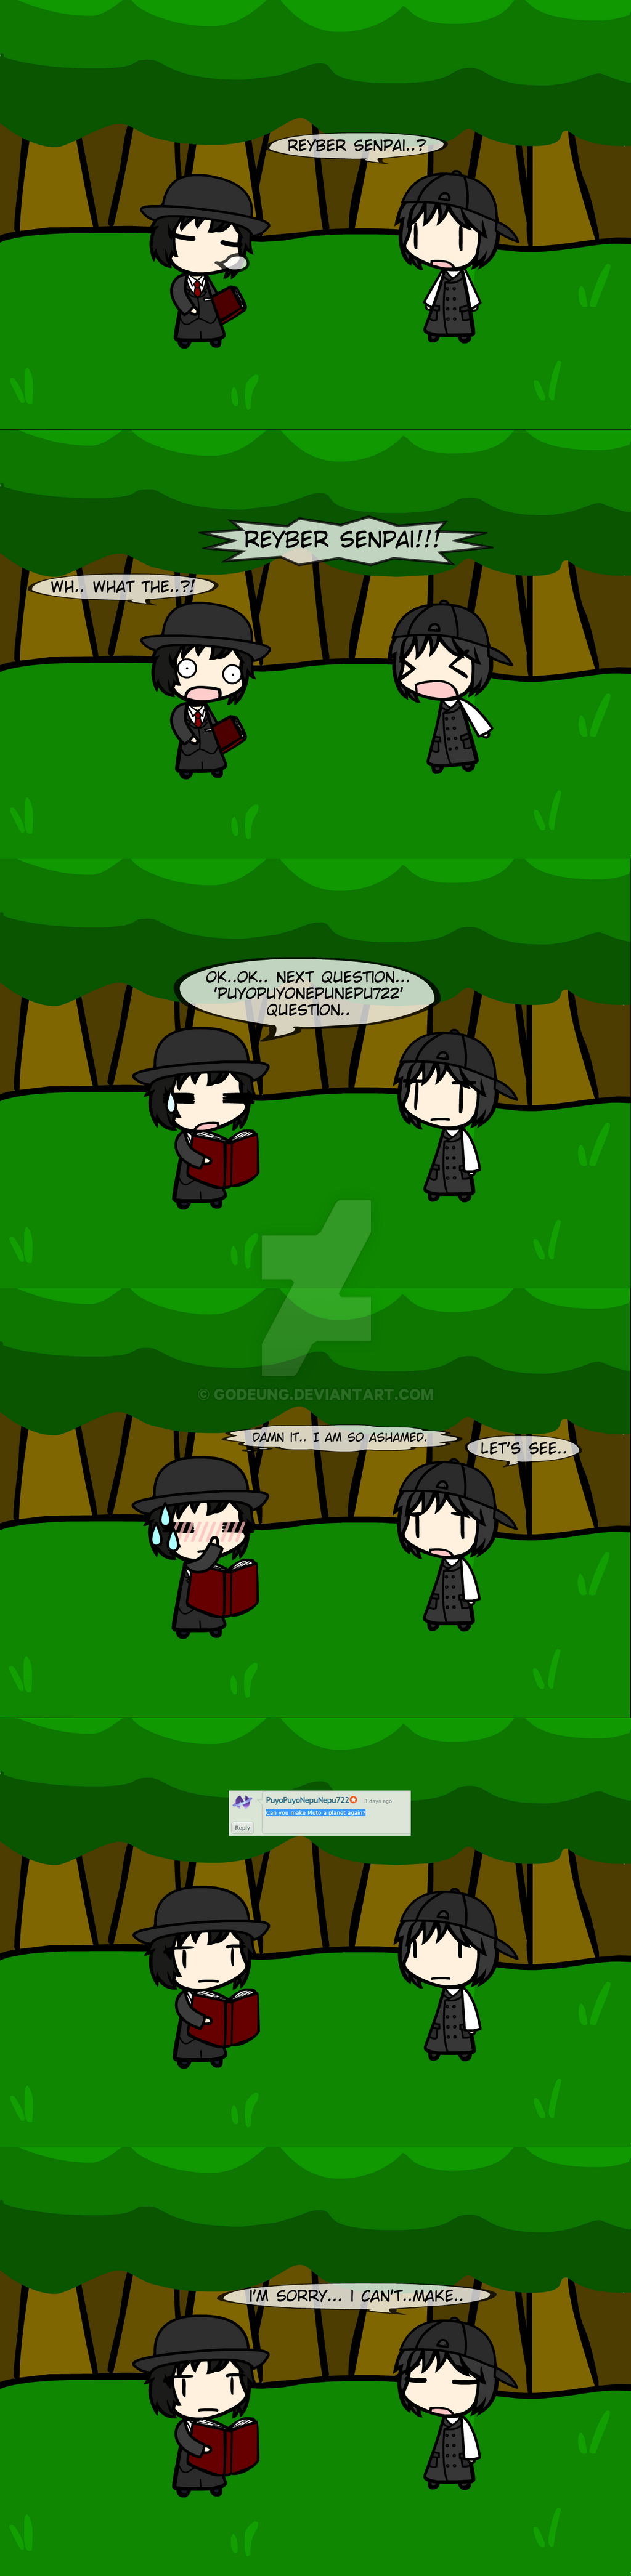 (walfas) New Q and A Ask me! 5 by Godeung